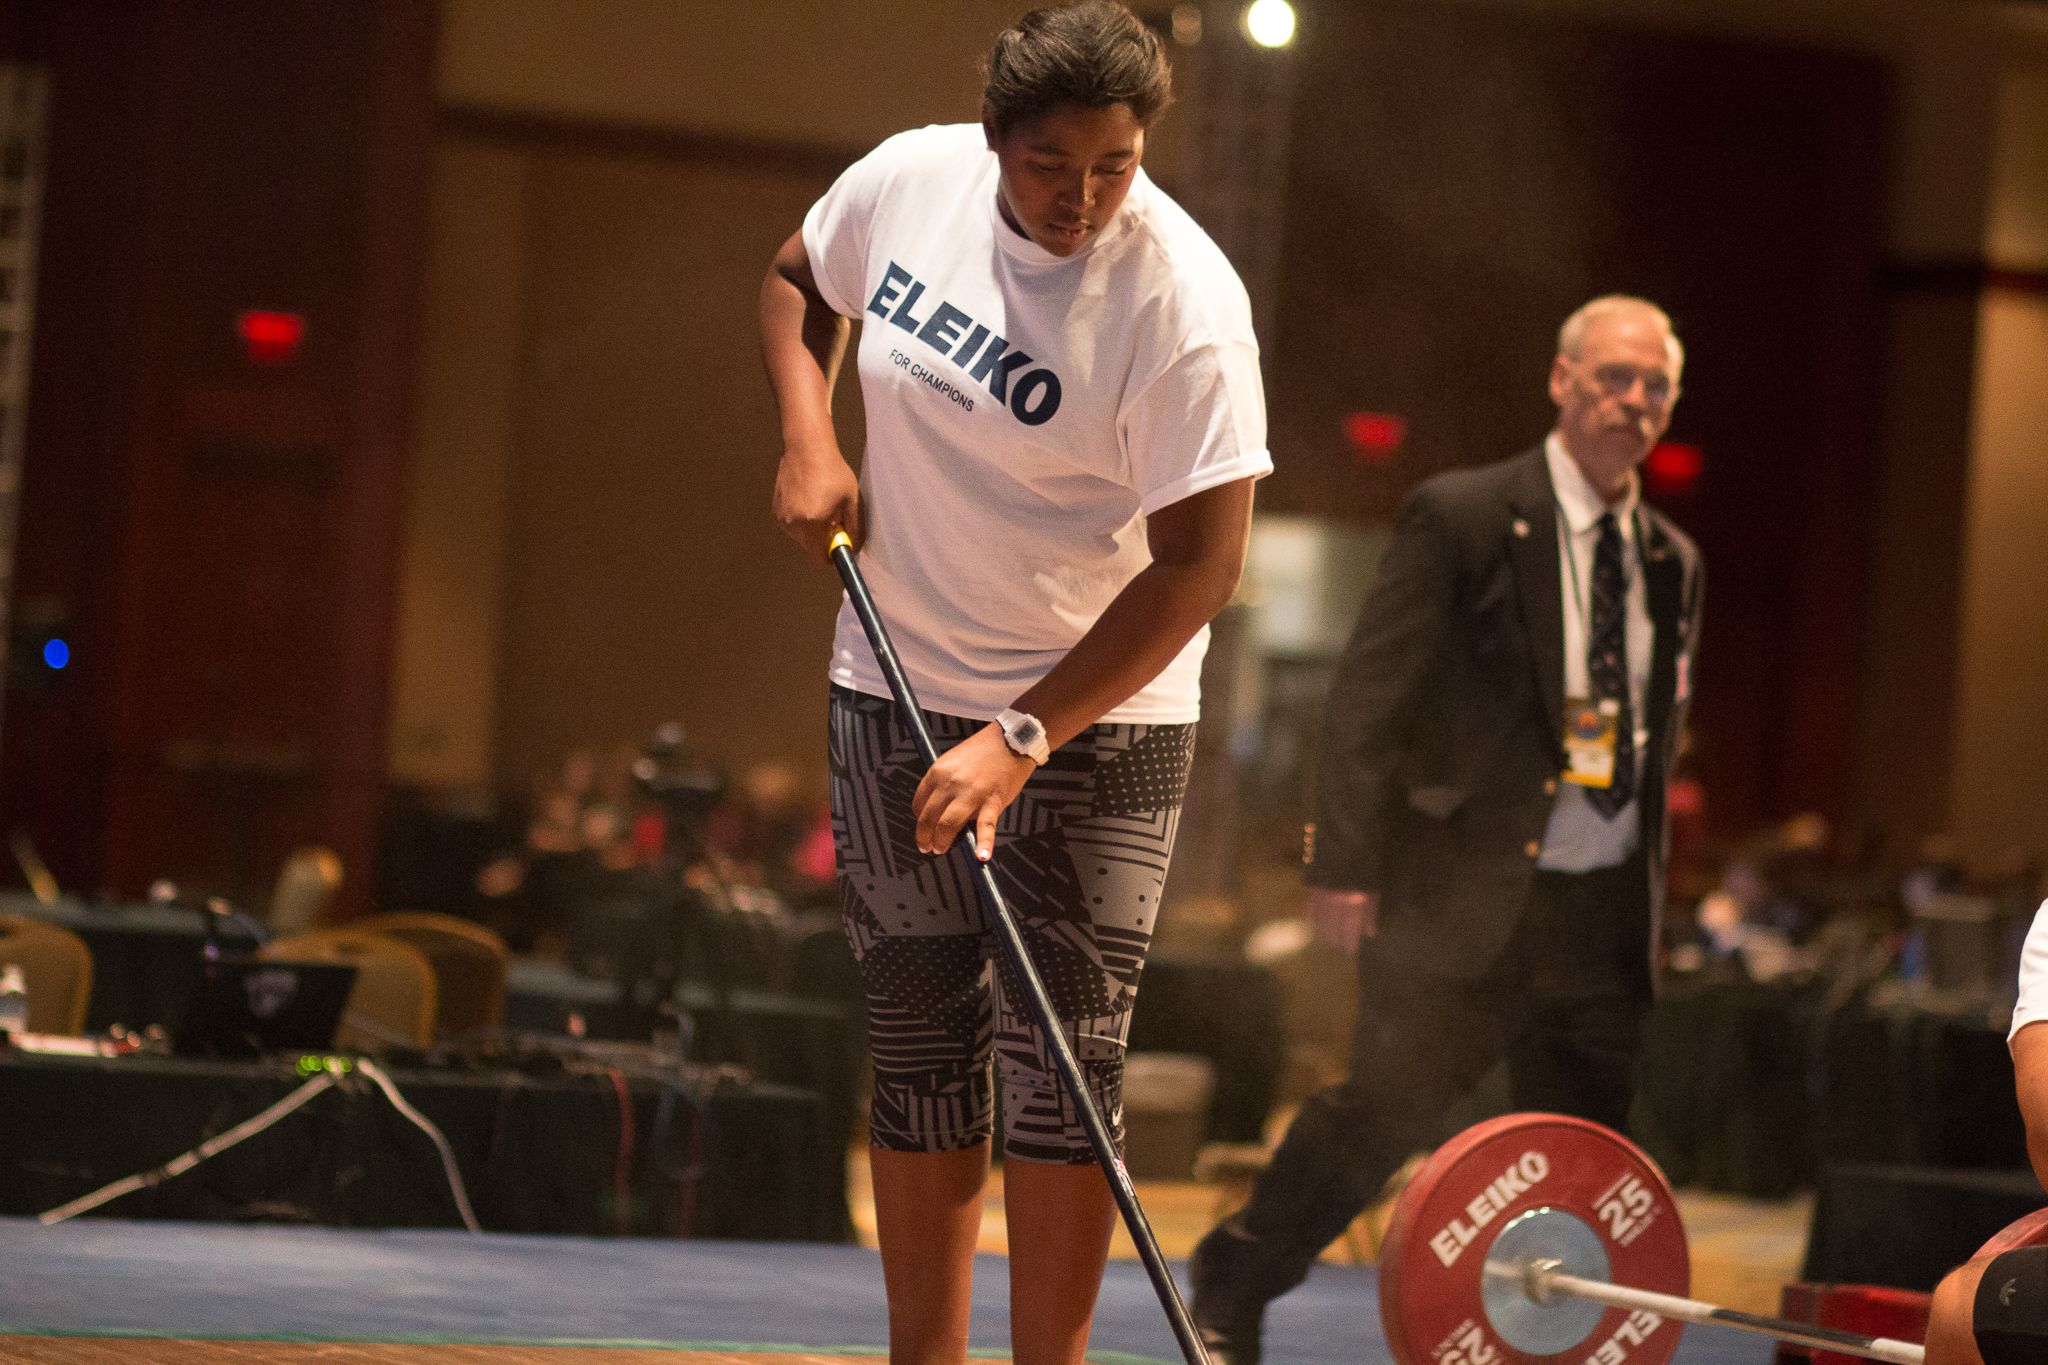 Behind-the-scence-American-Open-2016-weightlifting (10 of 10).jpg